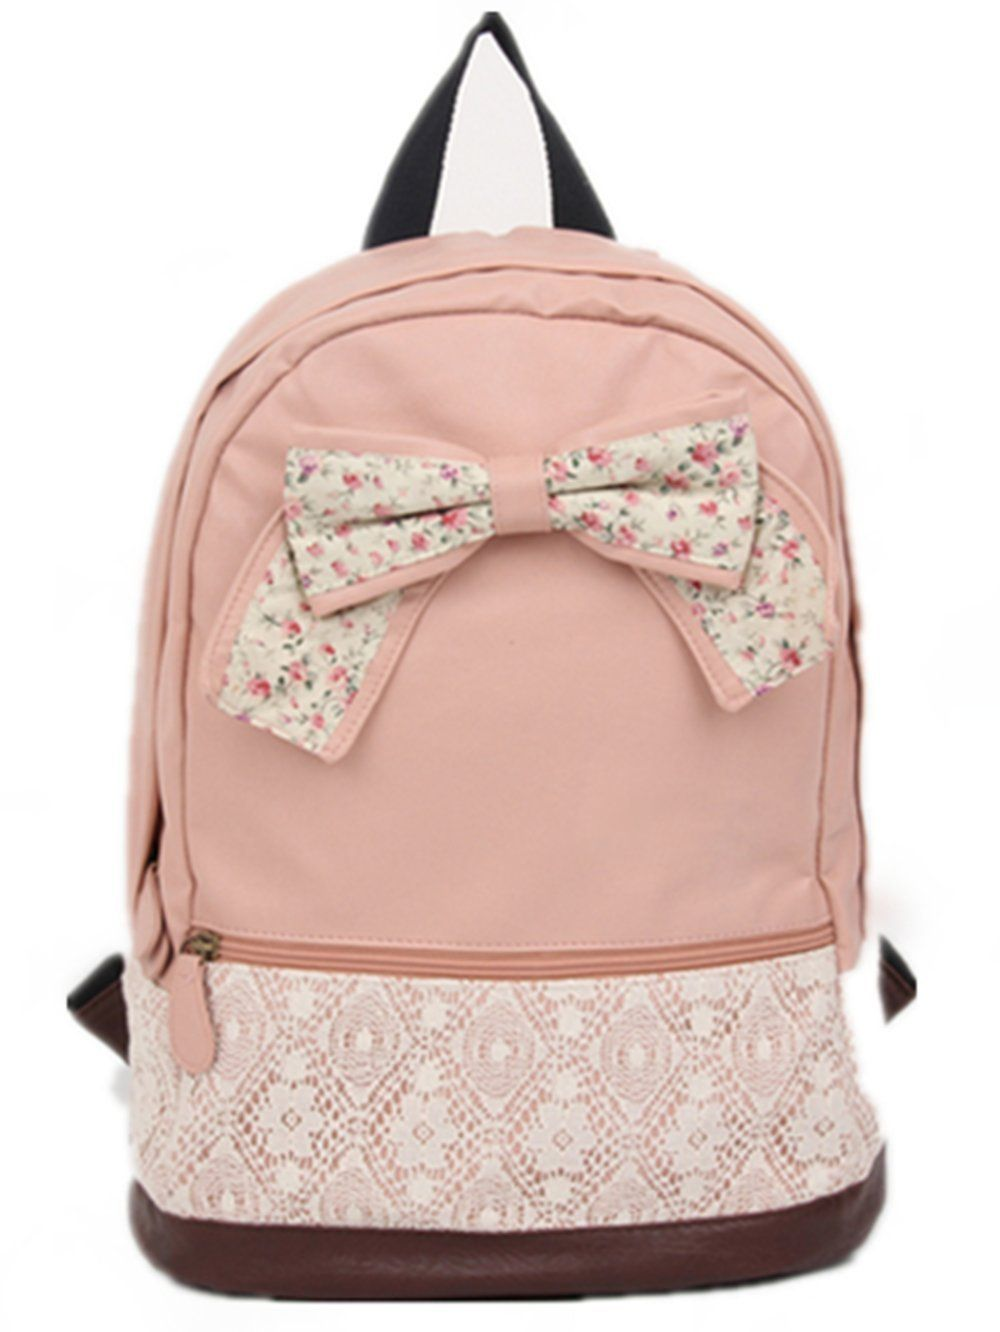 Really Cute Backpacks For Girls - Backpack Her